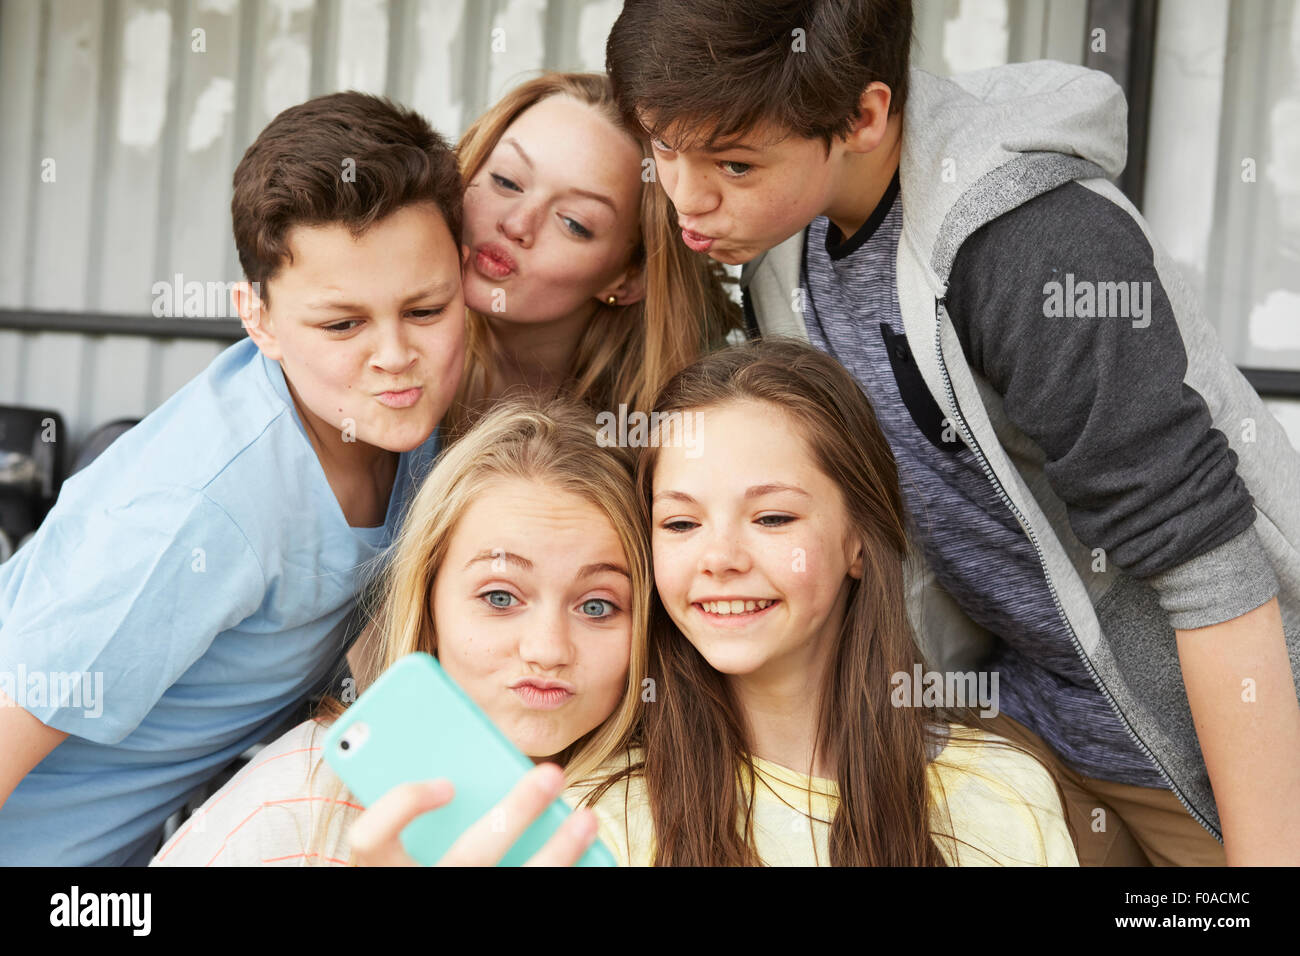 Five boys and girls making faces for smartphone selfie in shelter - Stock Image